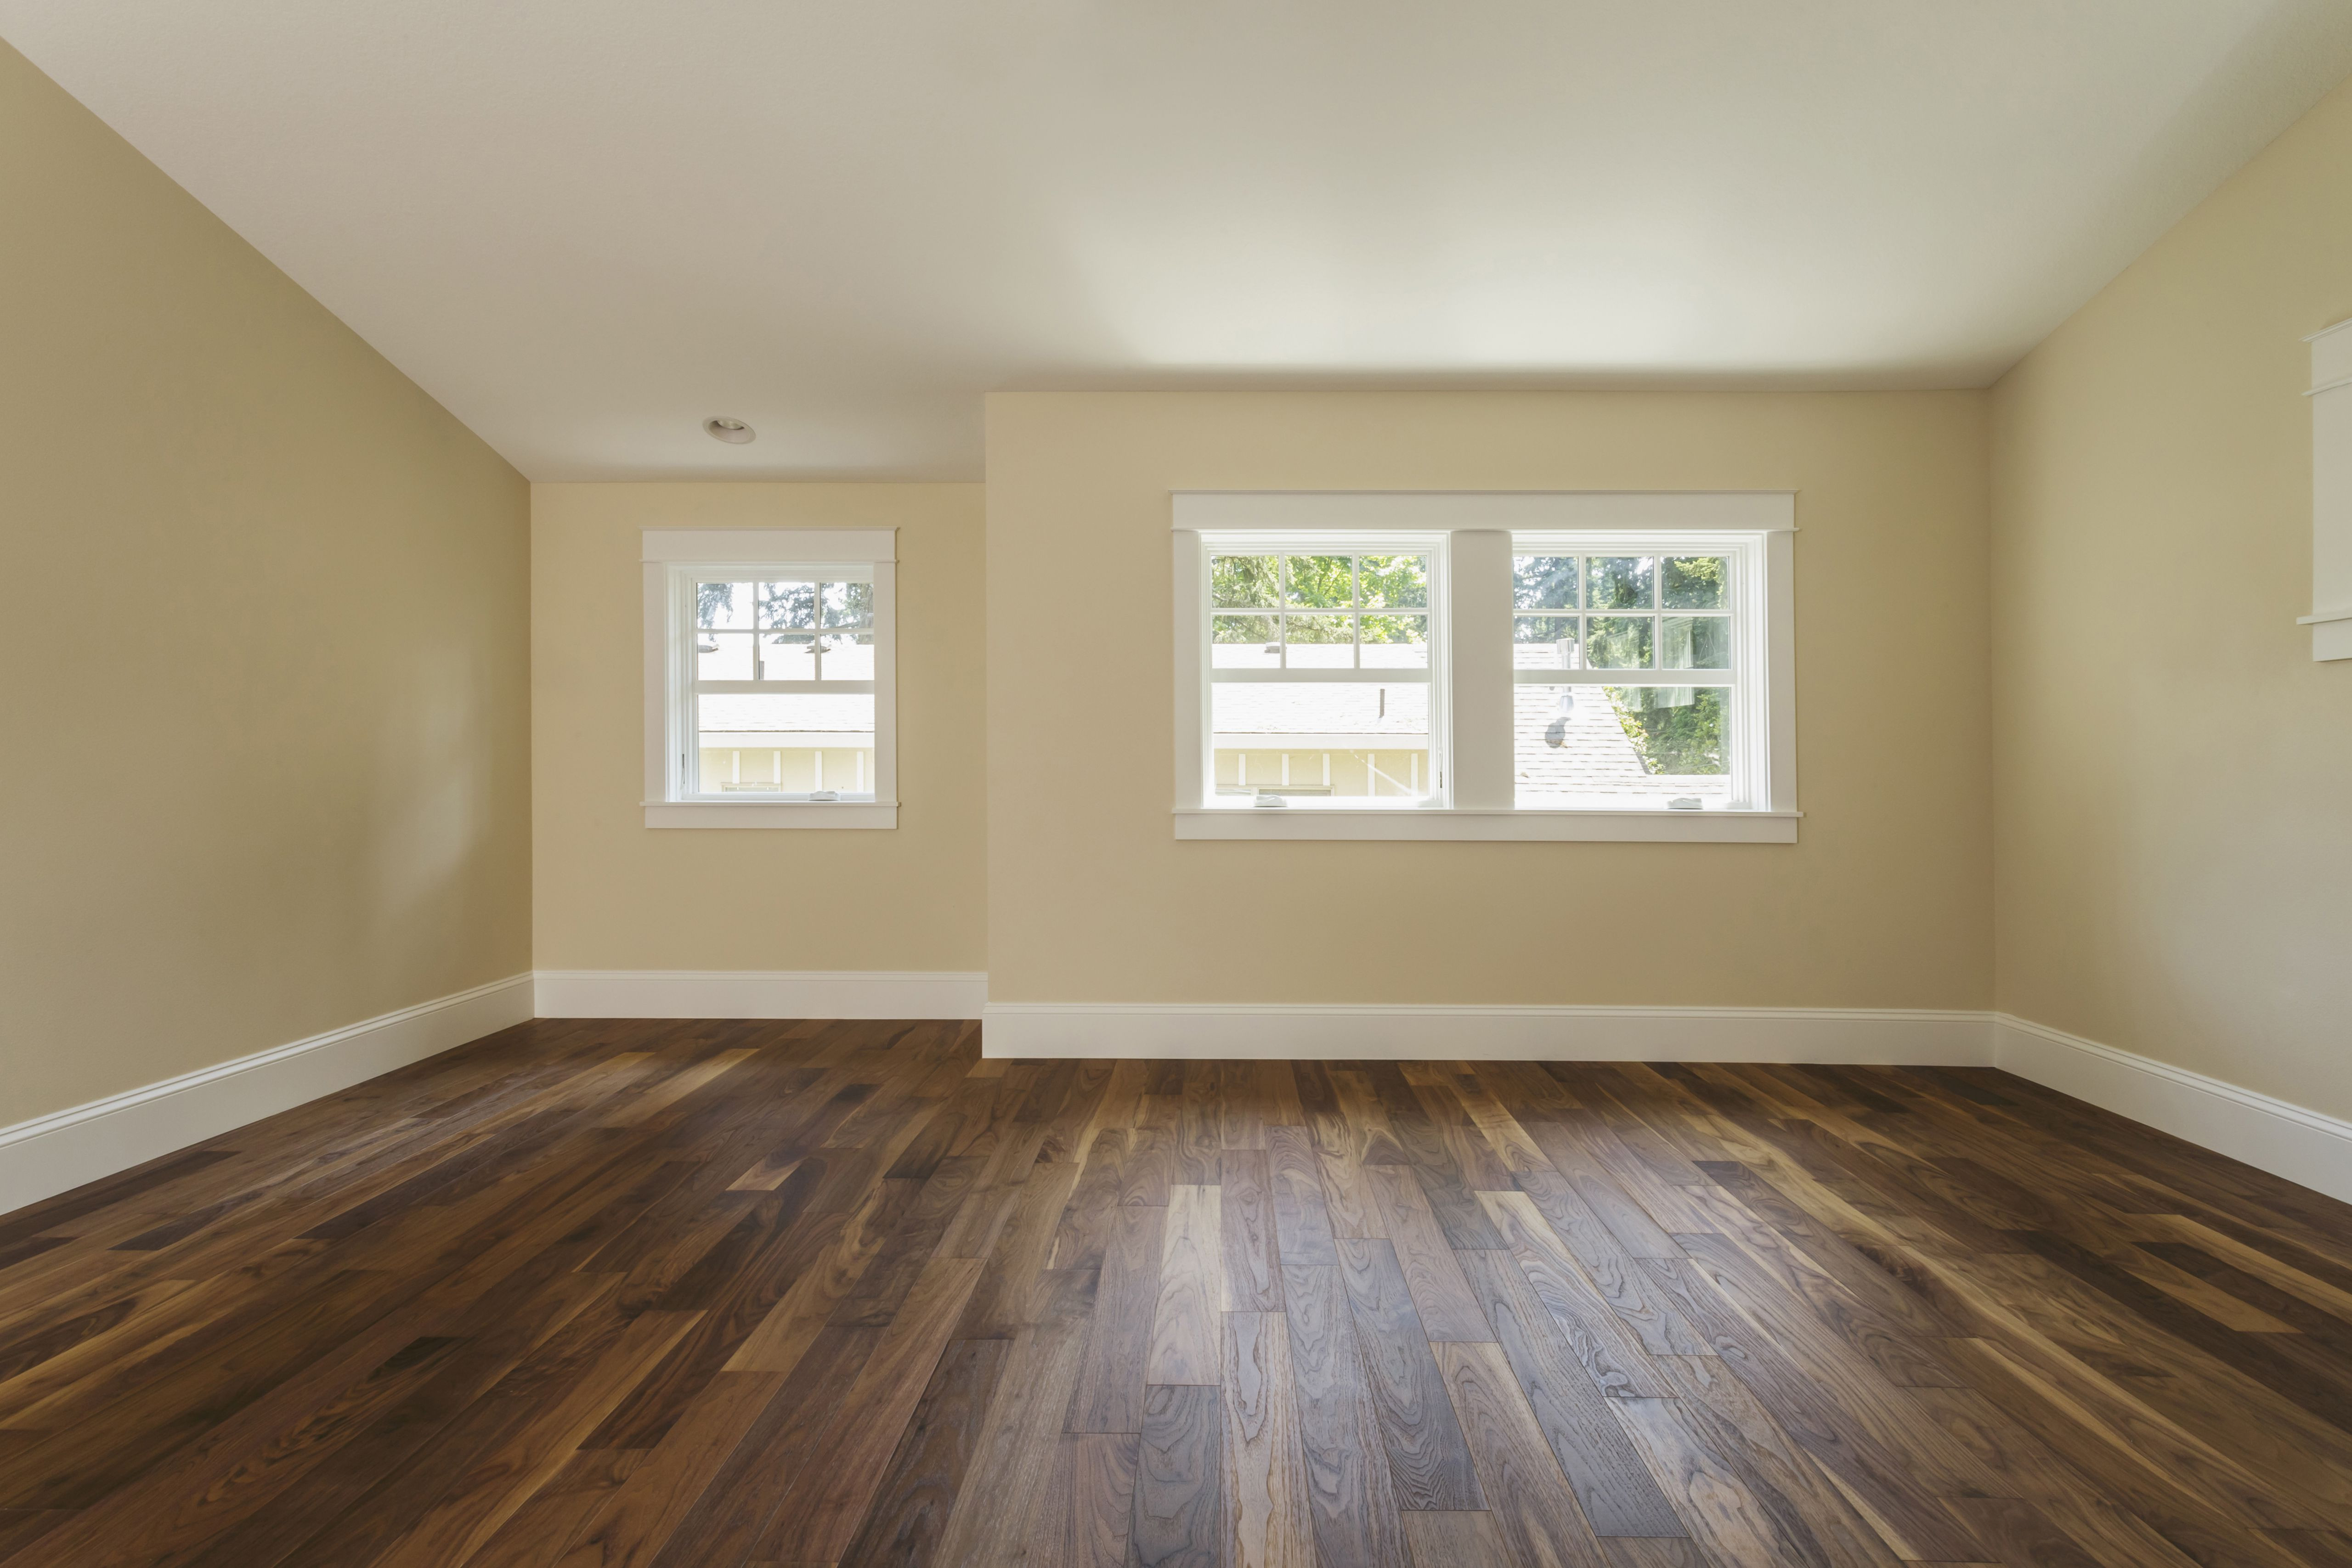 hardwood floors direction of planks of its easy and fast to install plank vinyl flooring in wooden floor in empty bedroom 482143001 588bd5f45f9b5874eebd56e9